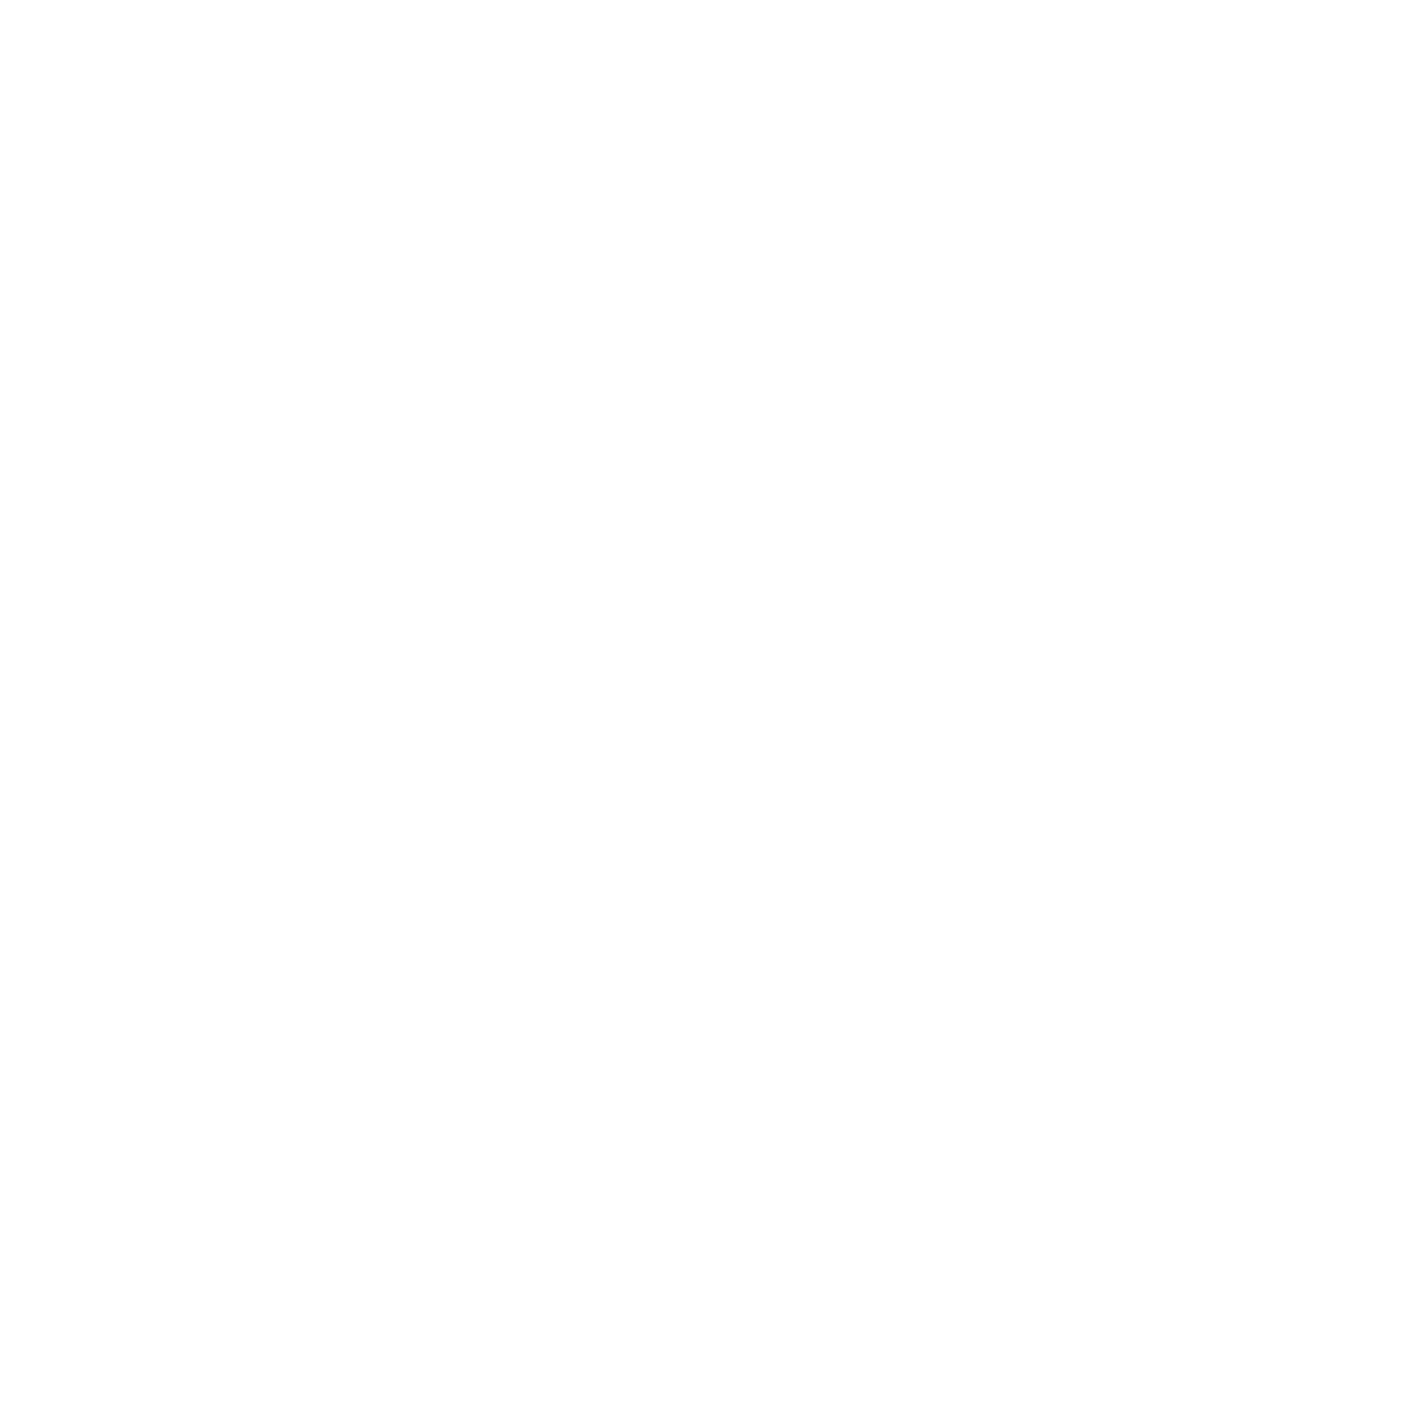 sitap italian fashion carpet logo